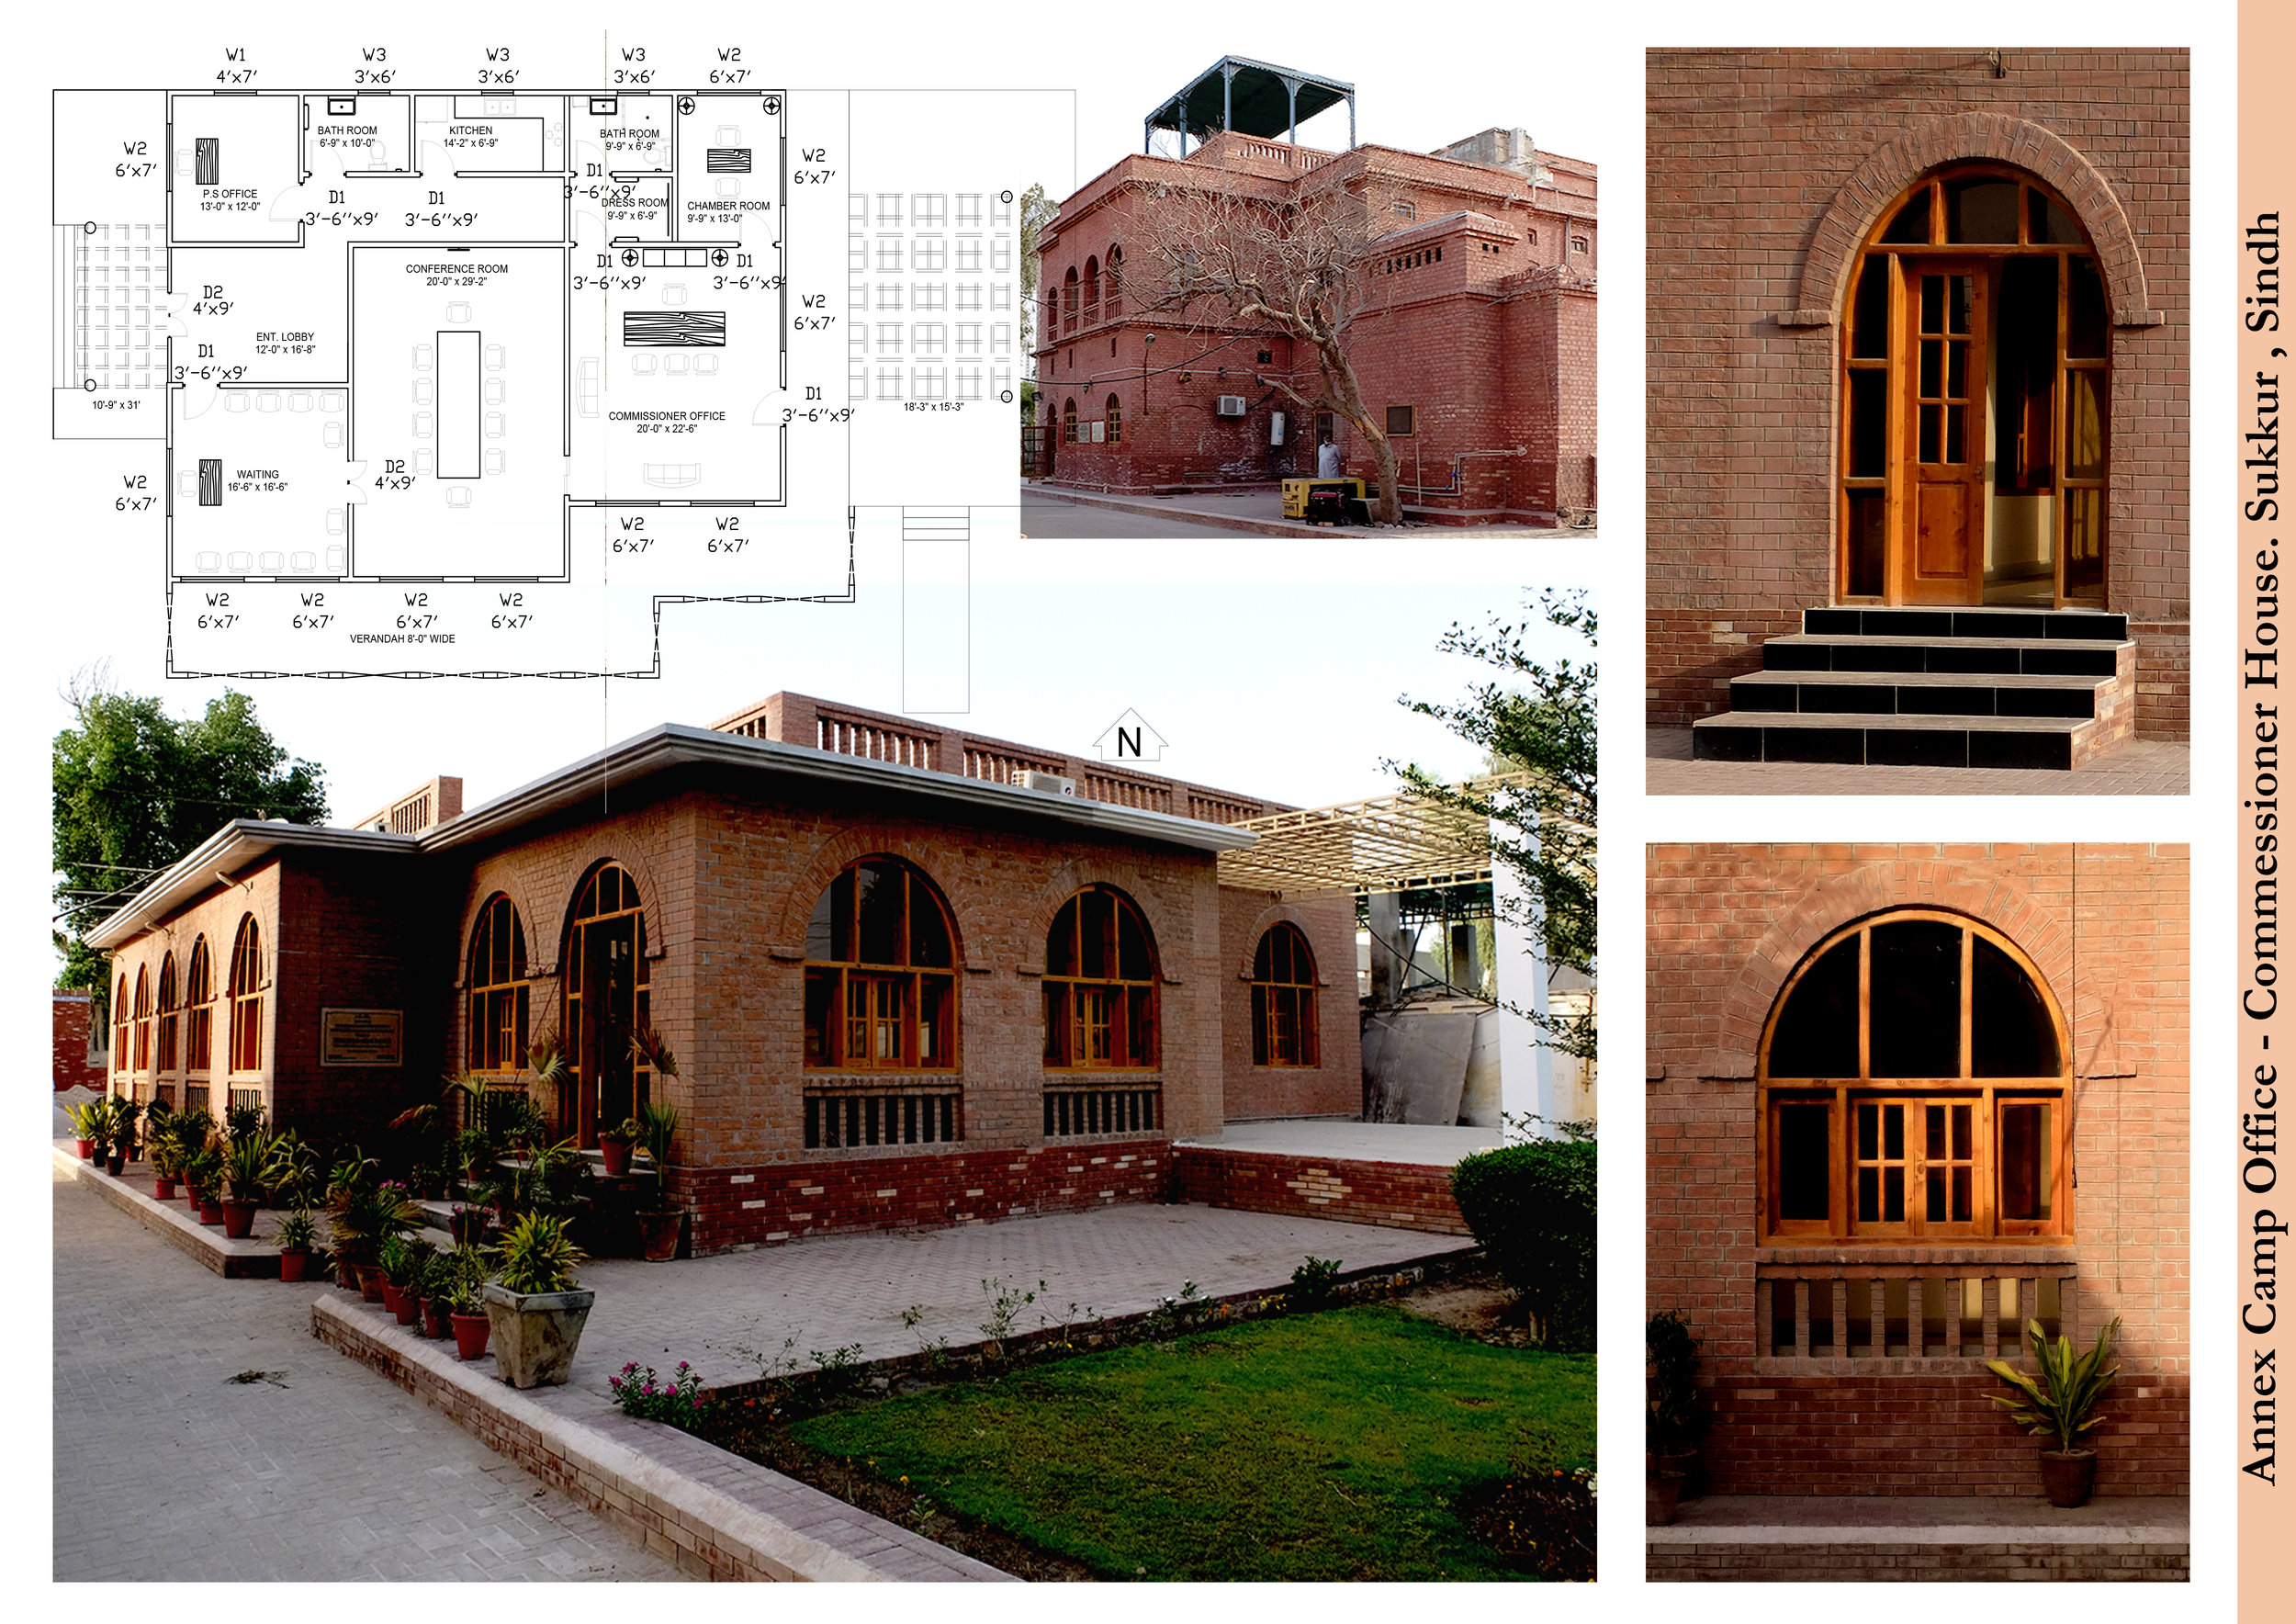 Commissioner House -sindh.jpg